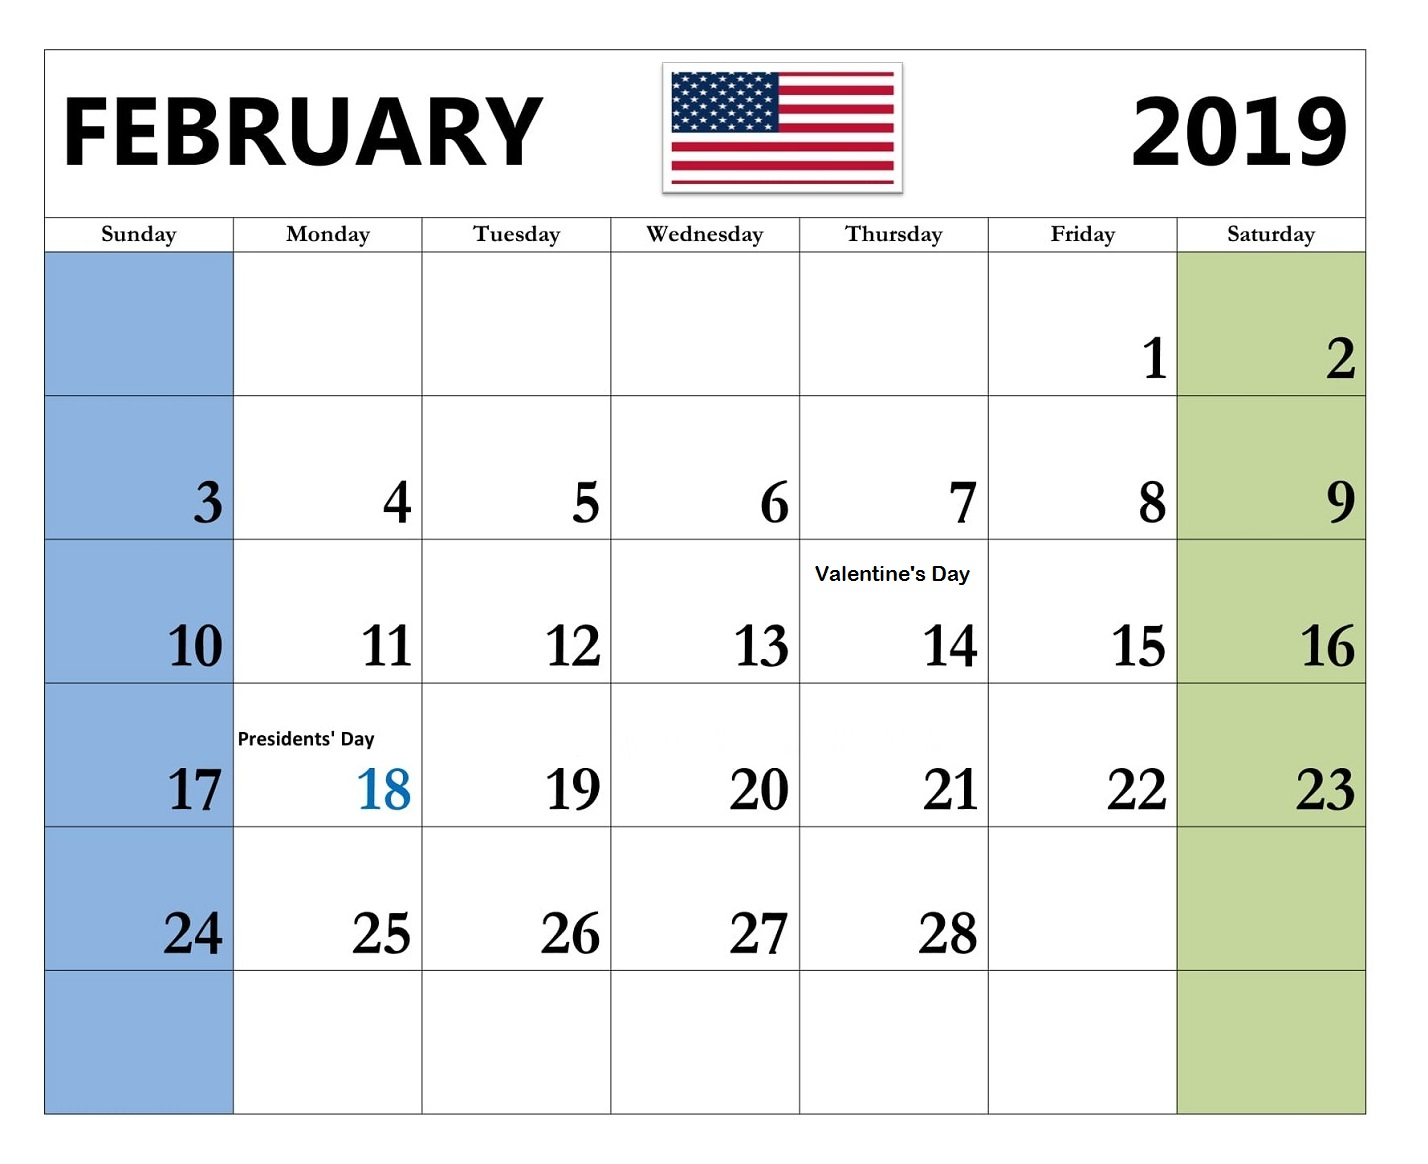 Feb 2019 Calendar With Holidays USA